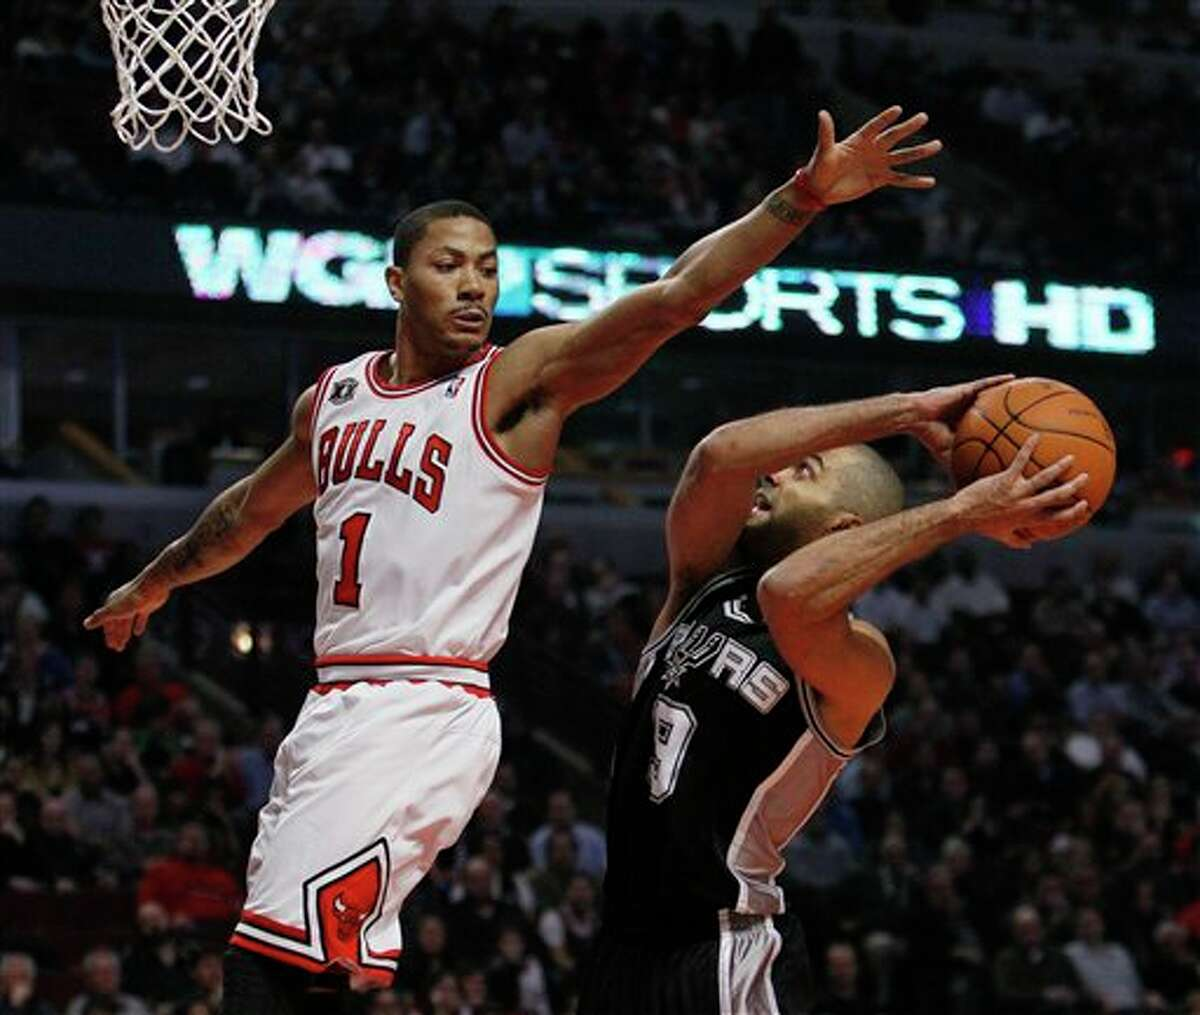 Spurs guard Tony Parker (right) tries to pass around the Bulls' Derrick Rose on Thursday.